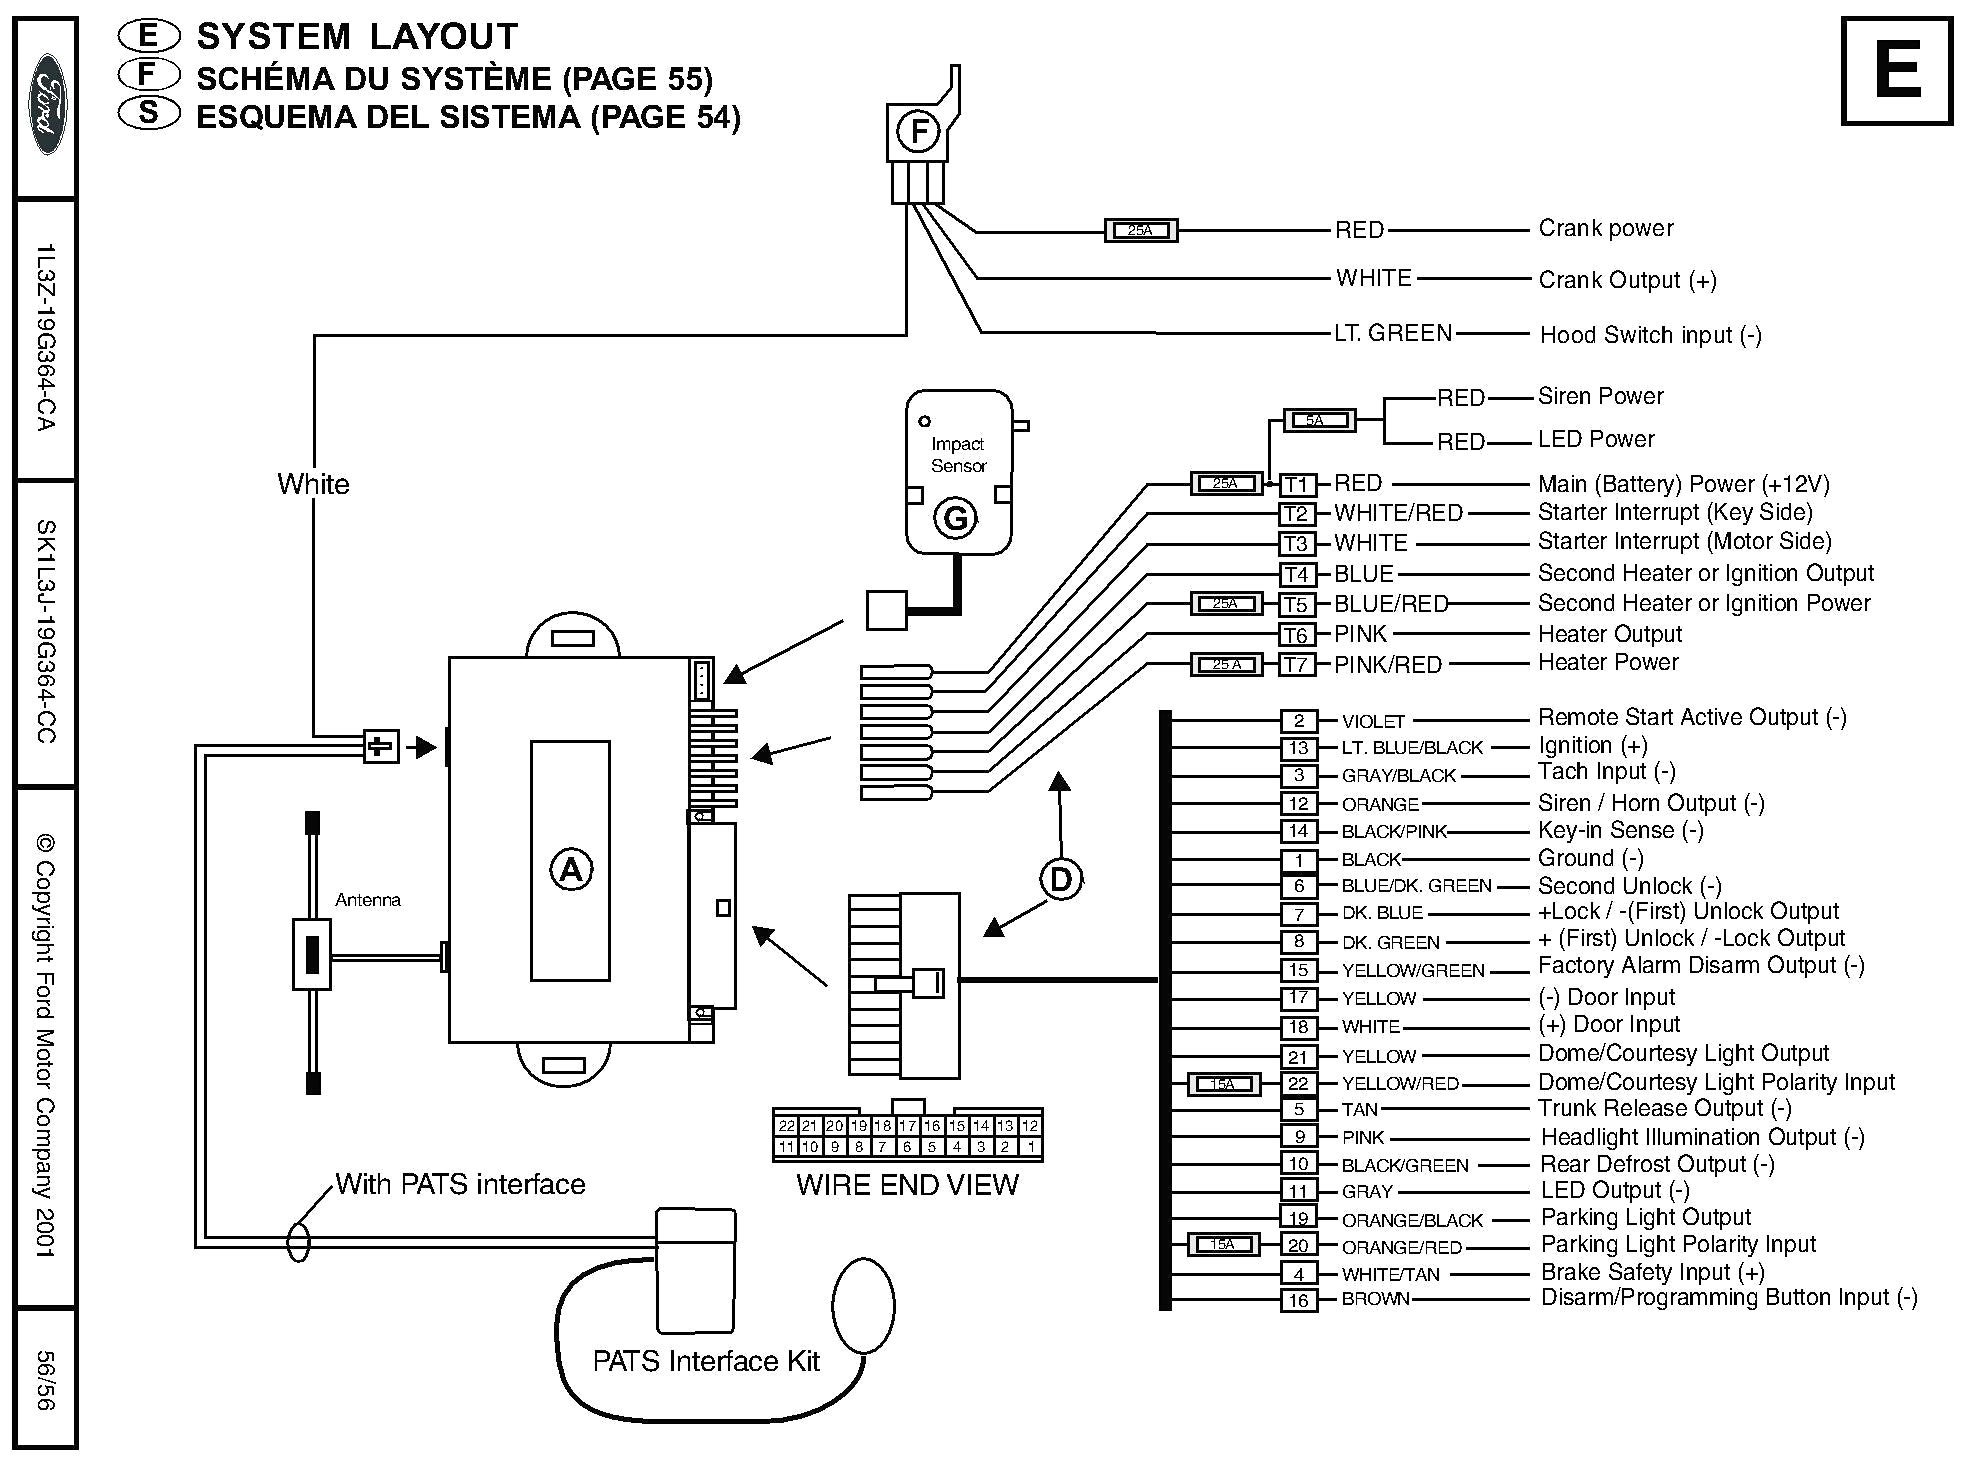 Car Wiring Diagrams Schematic Bulldog Vehicle Remote Start and Keyless Entry Installation Security Of Car Wiring Diagrams Schematic